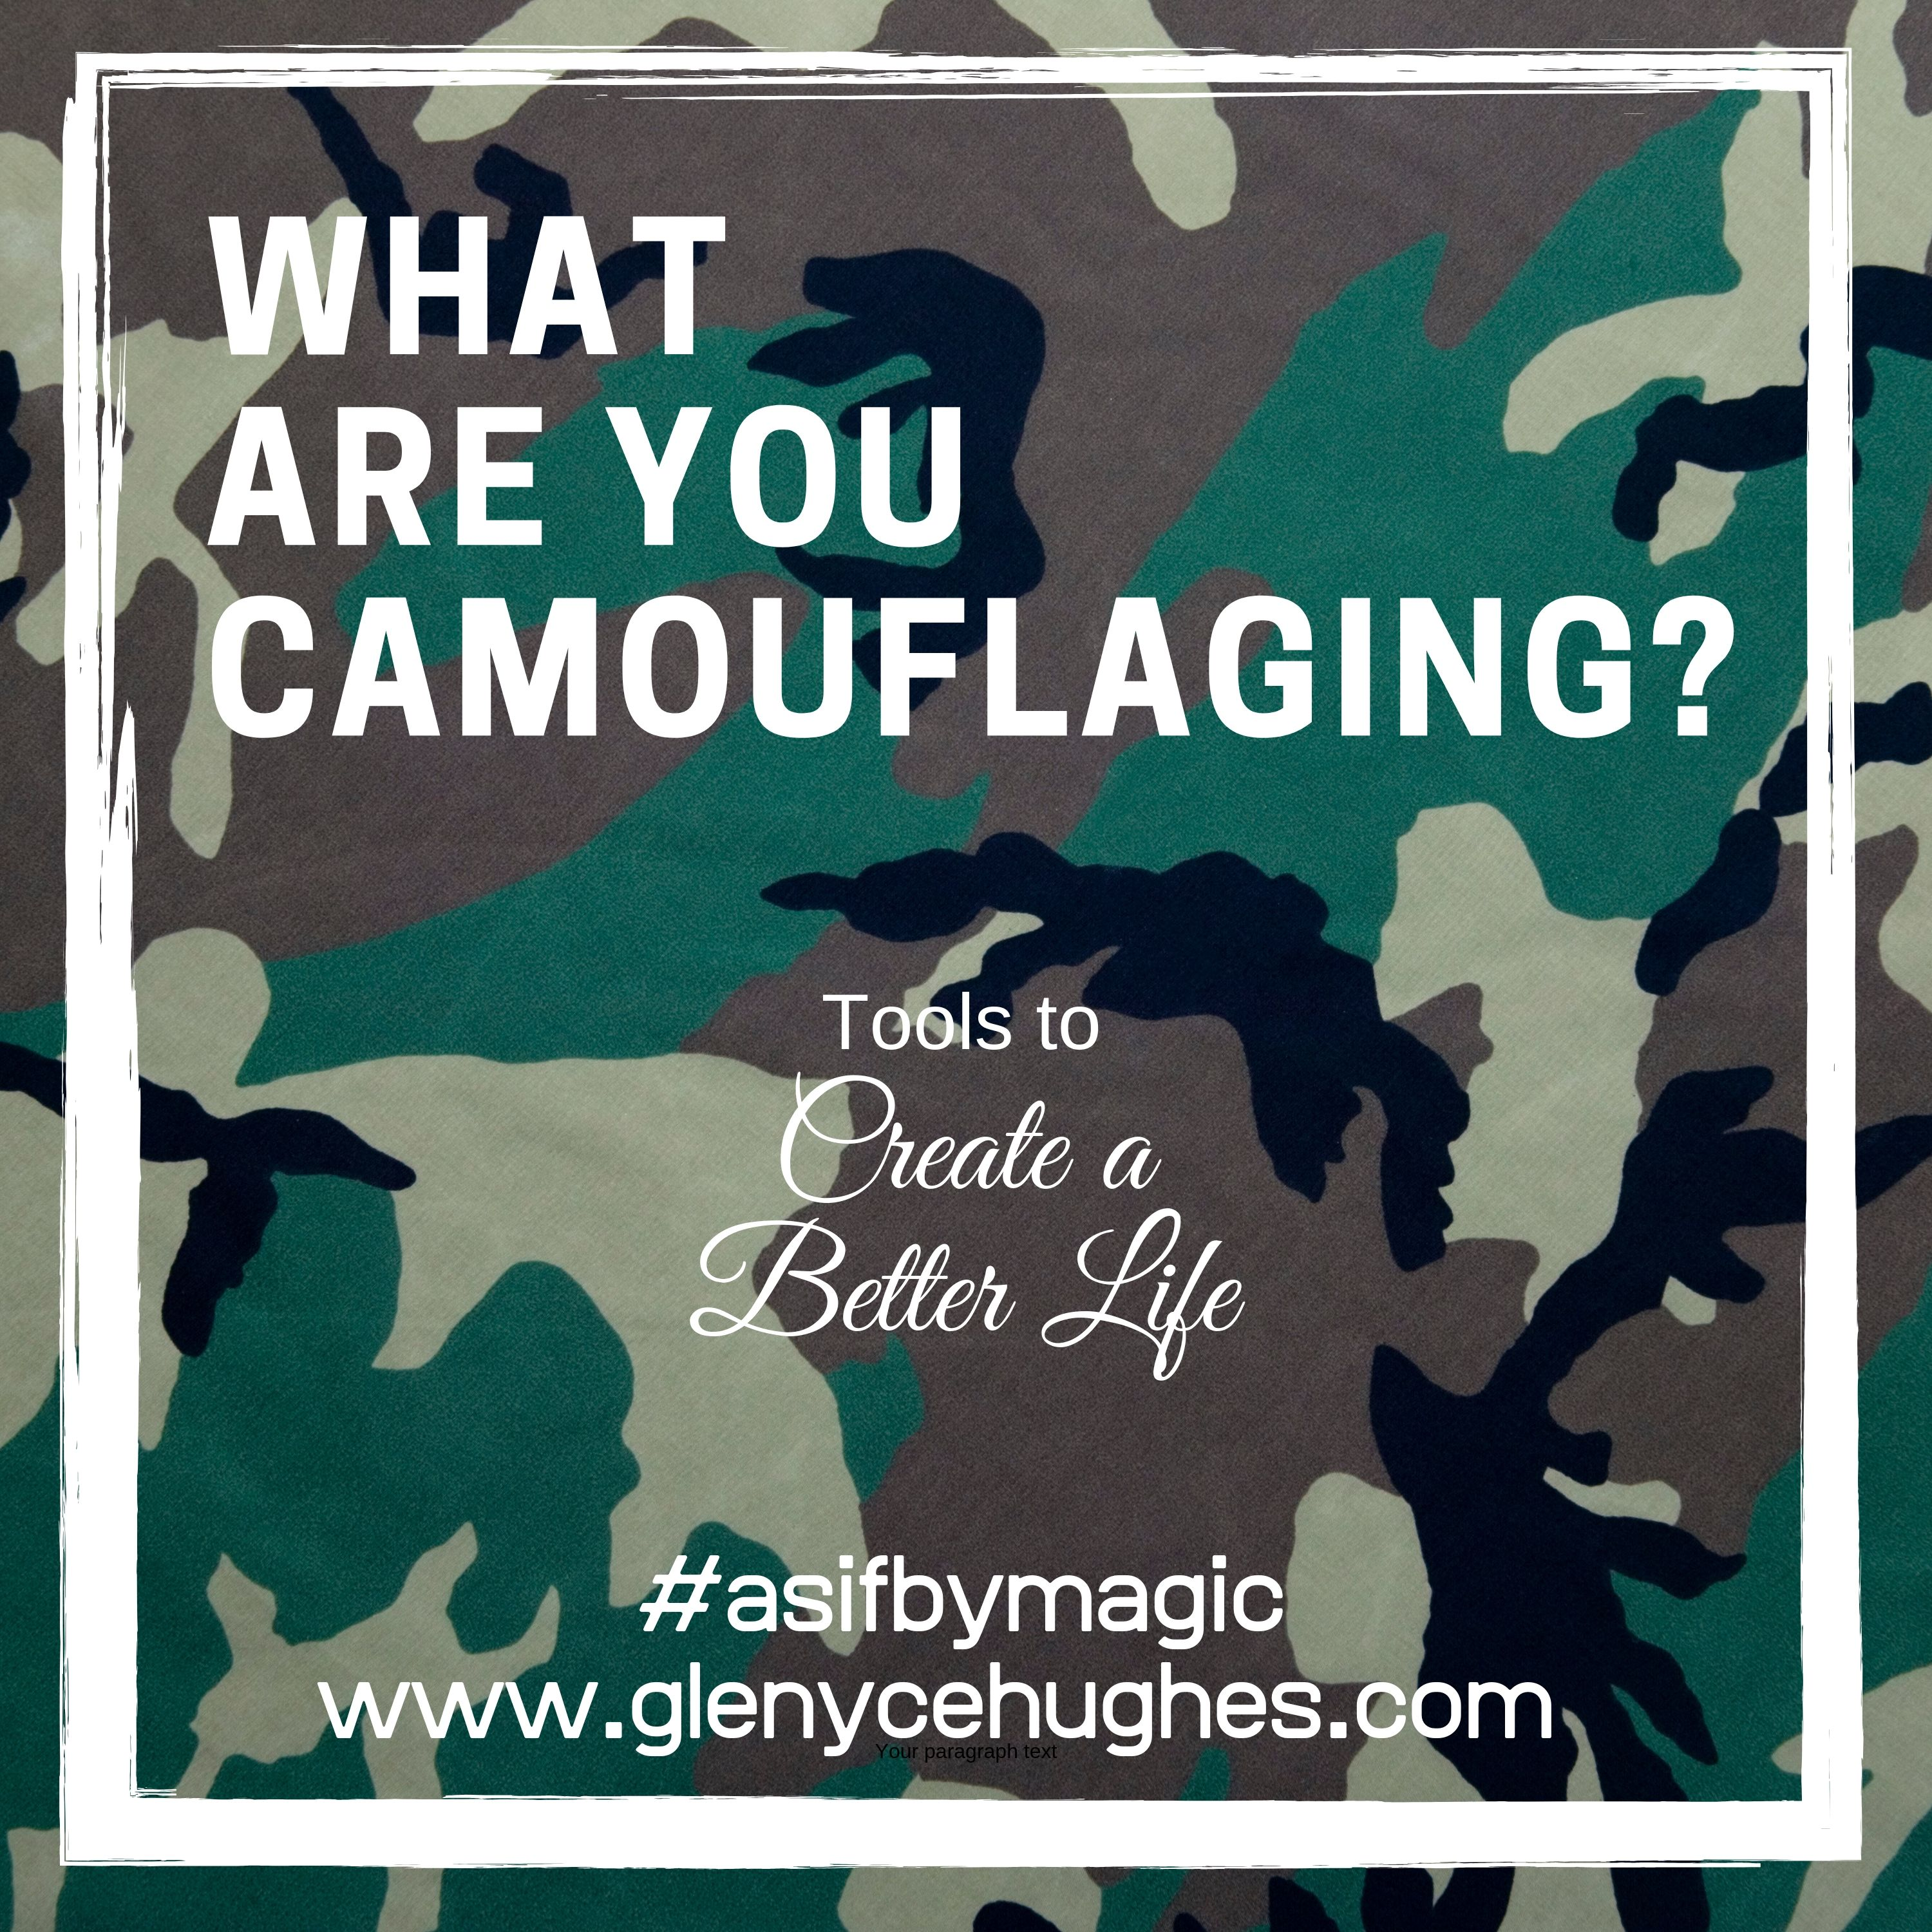 What Are You Camouflaging?